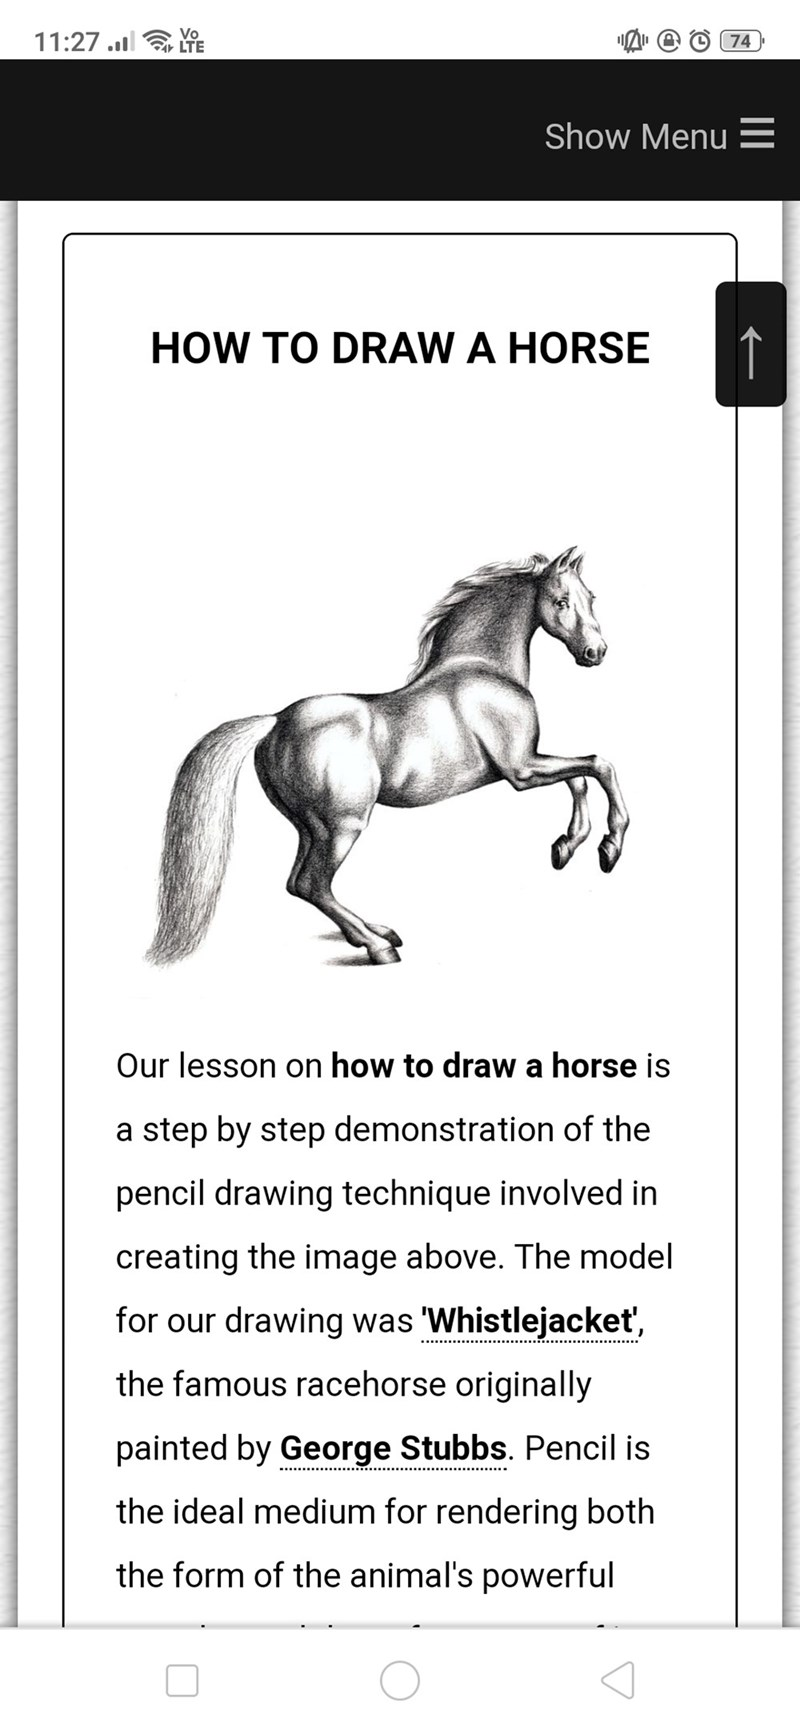 Horse - Vo LTE 11:27 .1 LE 74 Show Menu E HOW TO DRAW A HORSE Our lesson on how to drawa horse is a step by step demonstration of the pencil drawing technique involved in creating the image above. The model for our drawing was Whistlejacket, the famous racehorse originally painted by George Stubbs. Pencil is the ideal medium for rendering both the form of the animal's powerful